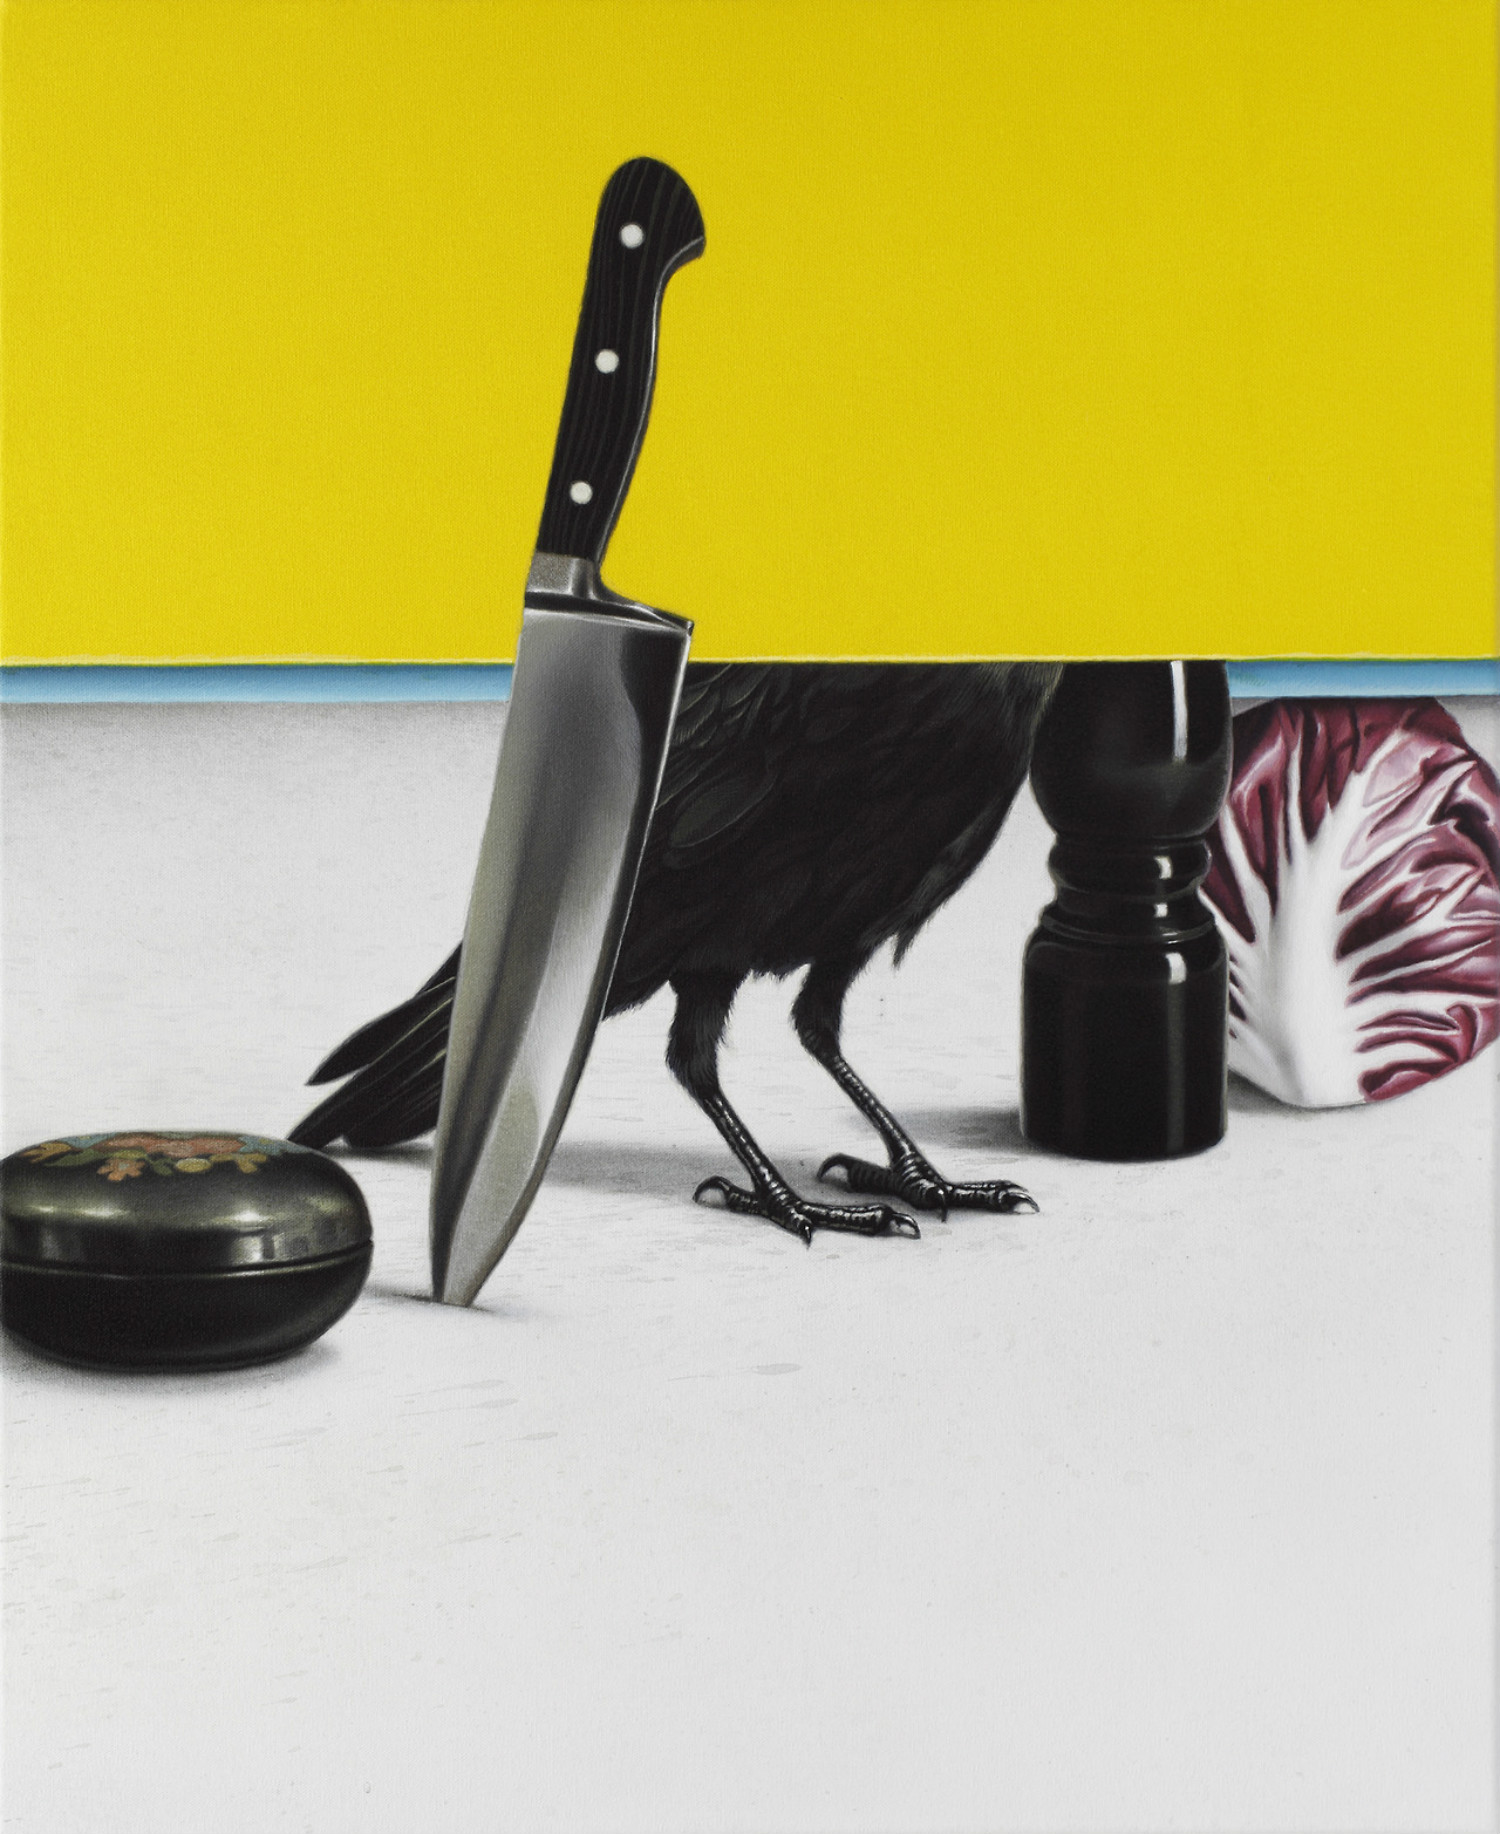 eckart hahn painting hyperrealist colour animal knife